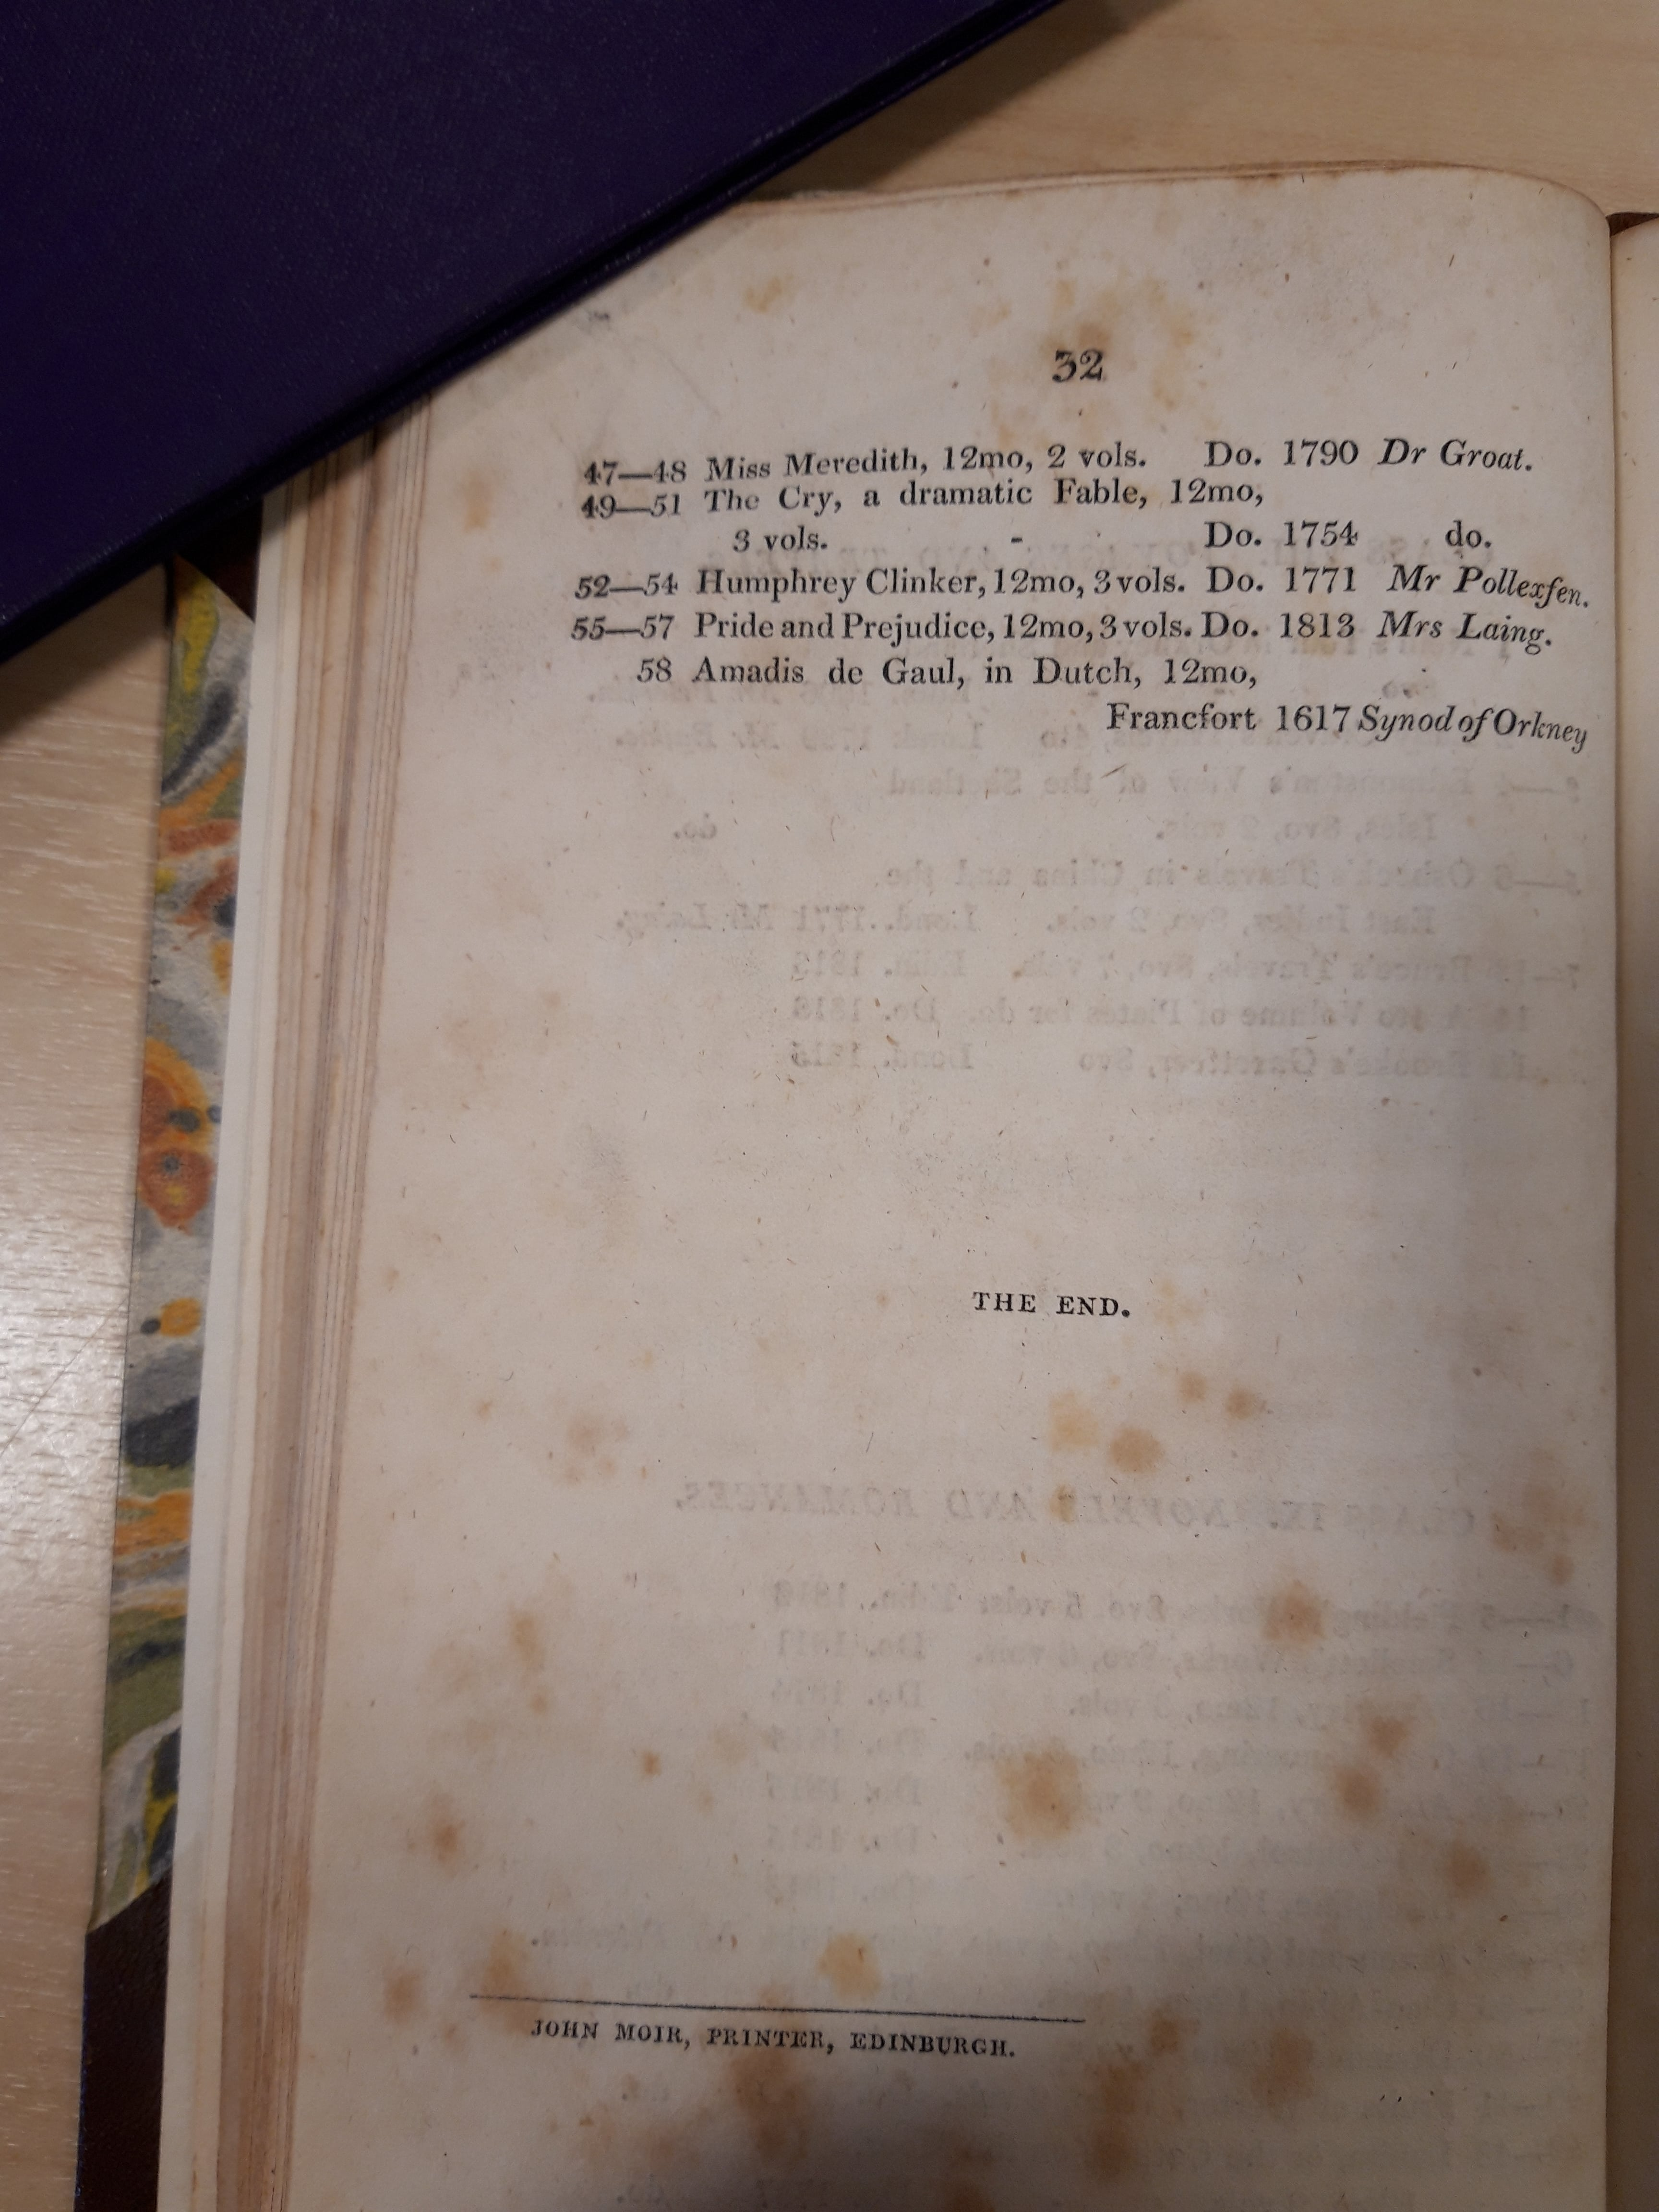 Library catalogue page showing entry for Pride and Prejudice